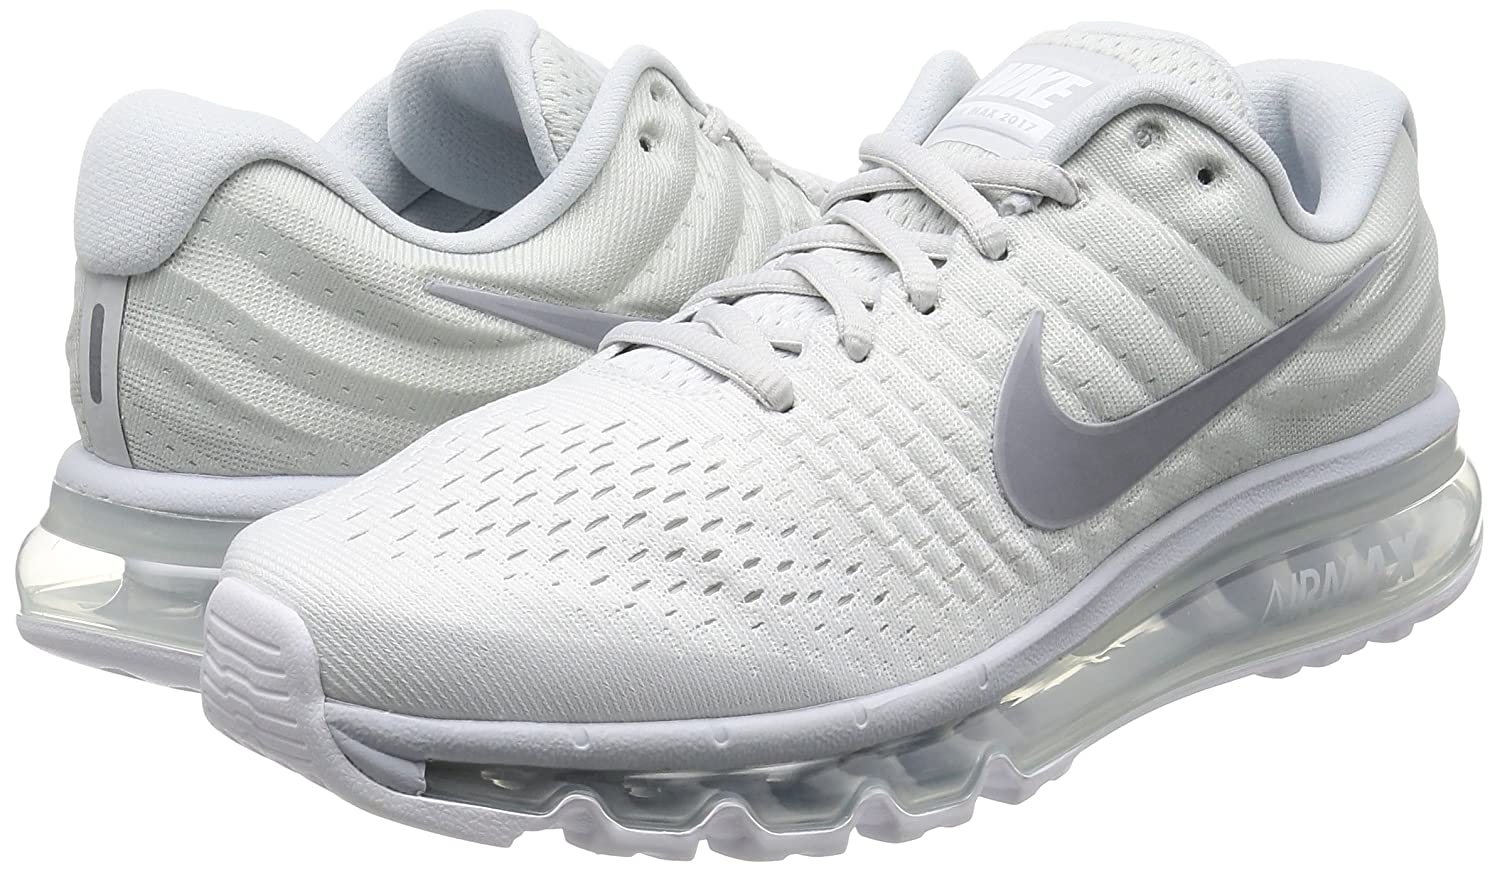 cheap for discount a7fff 70327 Amazon.com   Nike Mens Air Max 2017 Pure Platinum Wolf Grey White Off White  Nylon Cross-Trainers Shoes 6.5 D US   Shoes